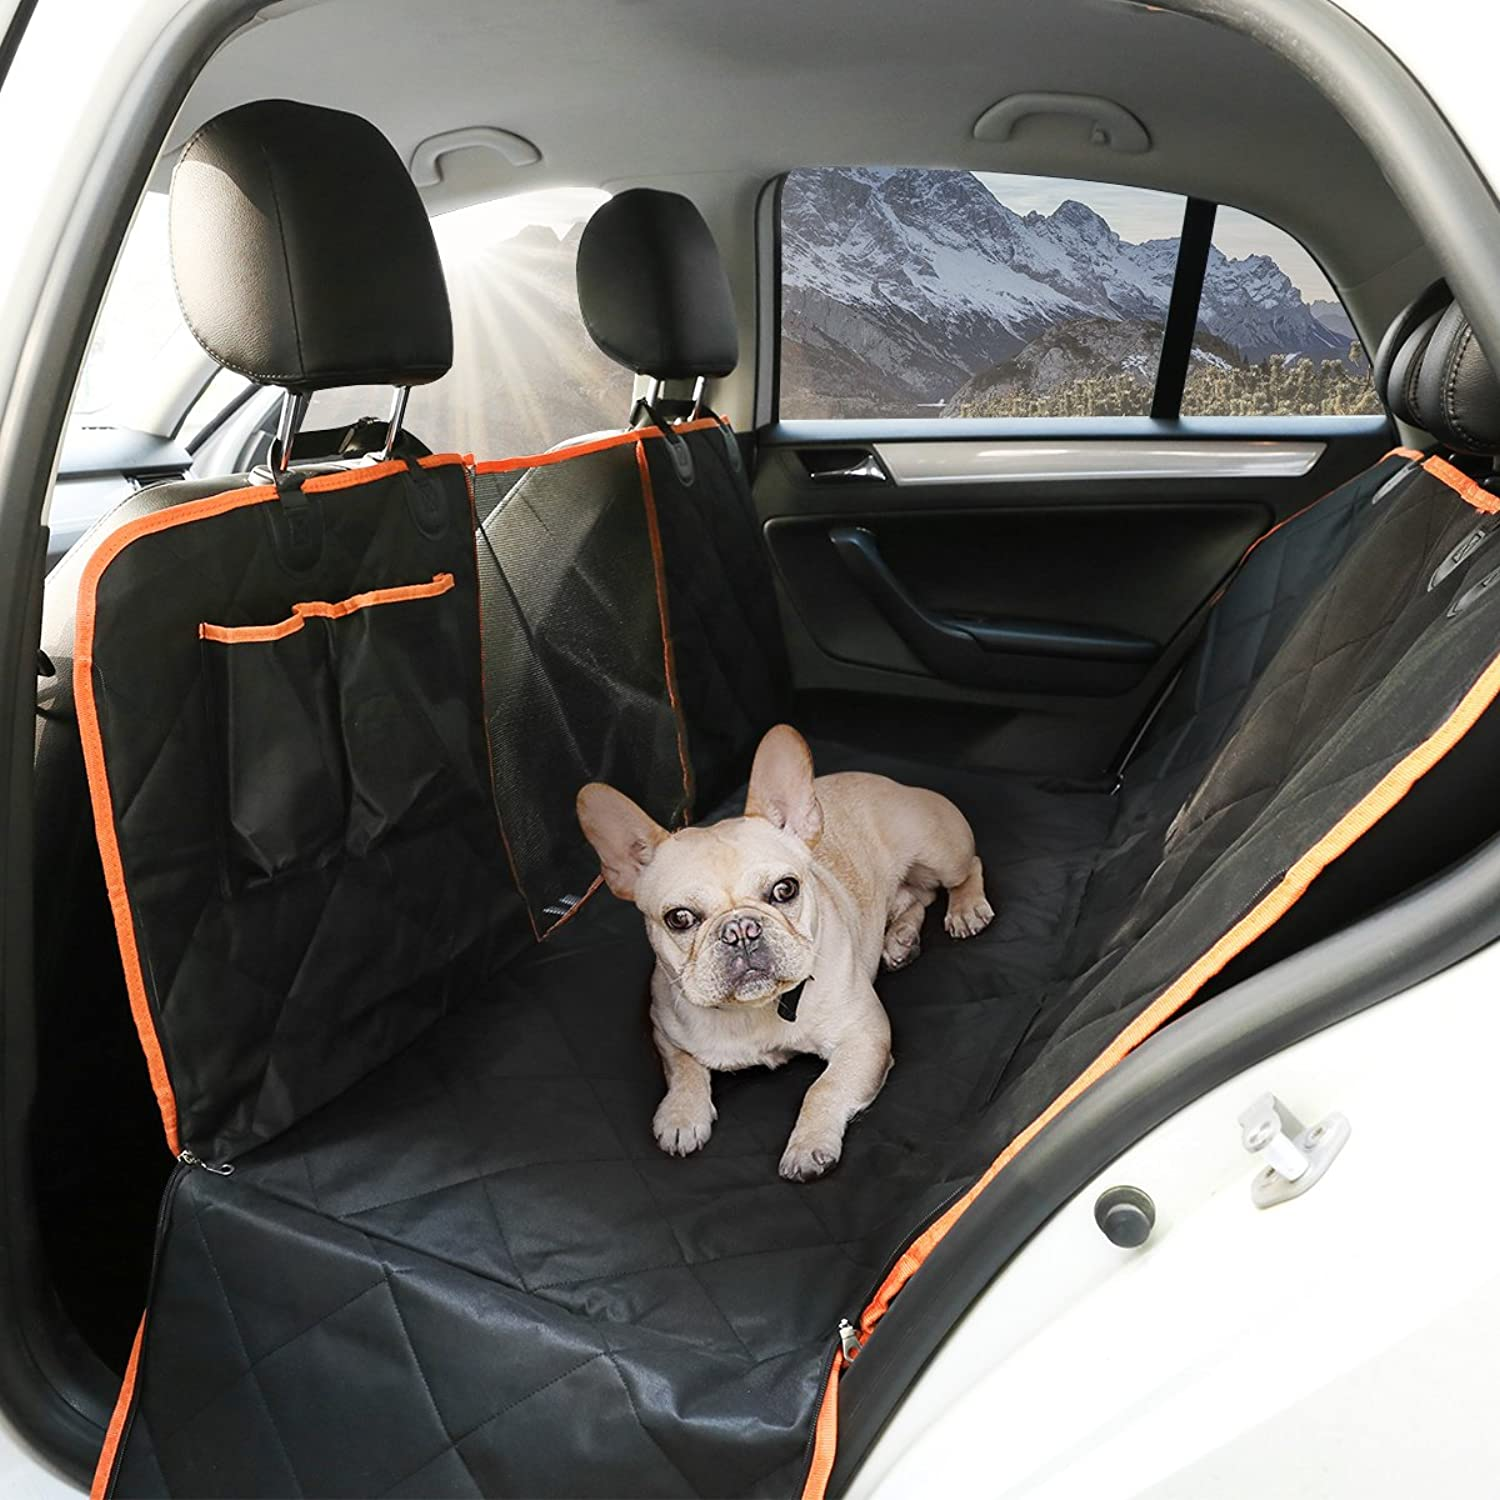 Dog Car Seat Cover with Mesh Viewing Window, Waterproof Scratch Proof Nonslip Back Seat Cover, Dog Travel Hammock